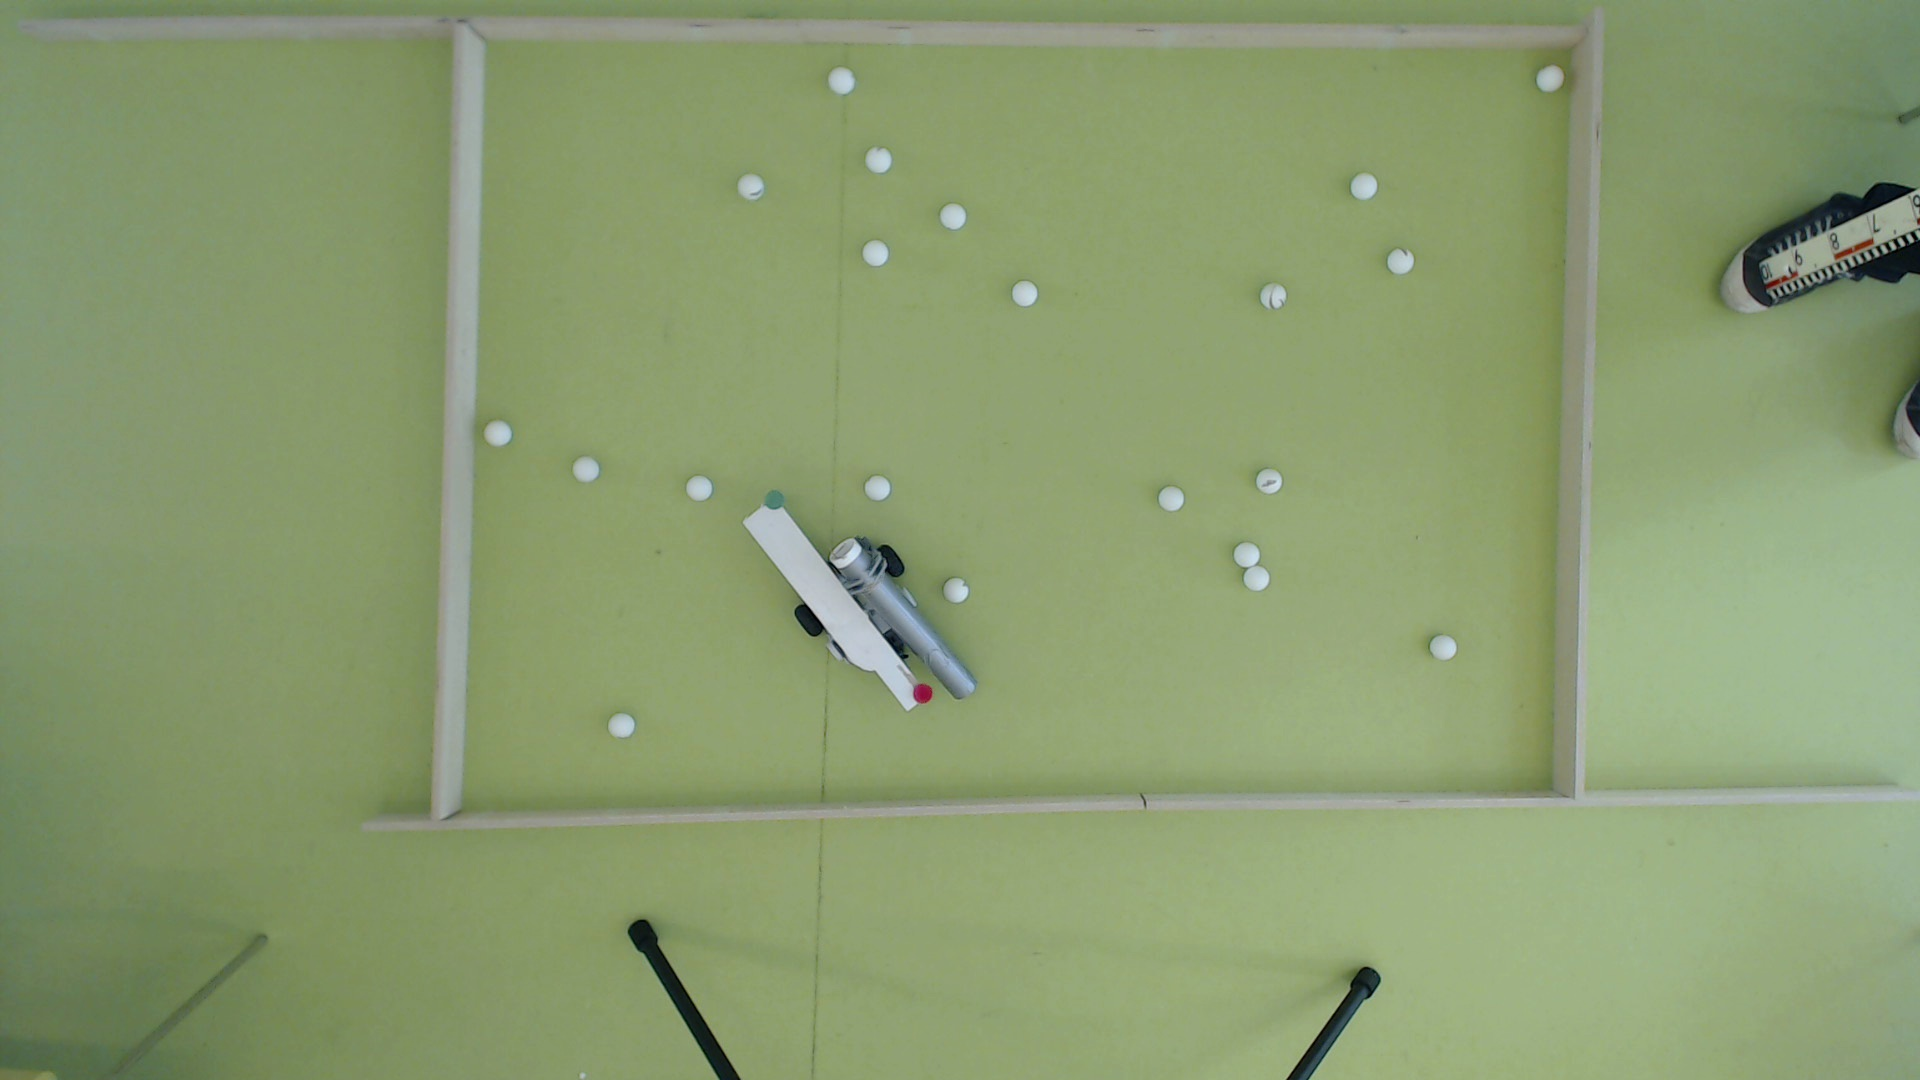 Detection of table tennis balls and color correction - OpenCV Q&A Forum